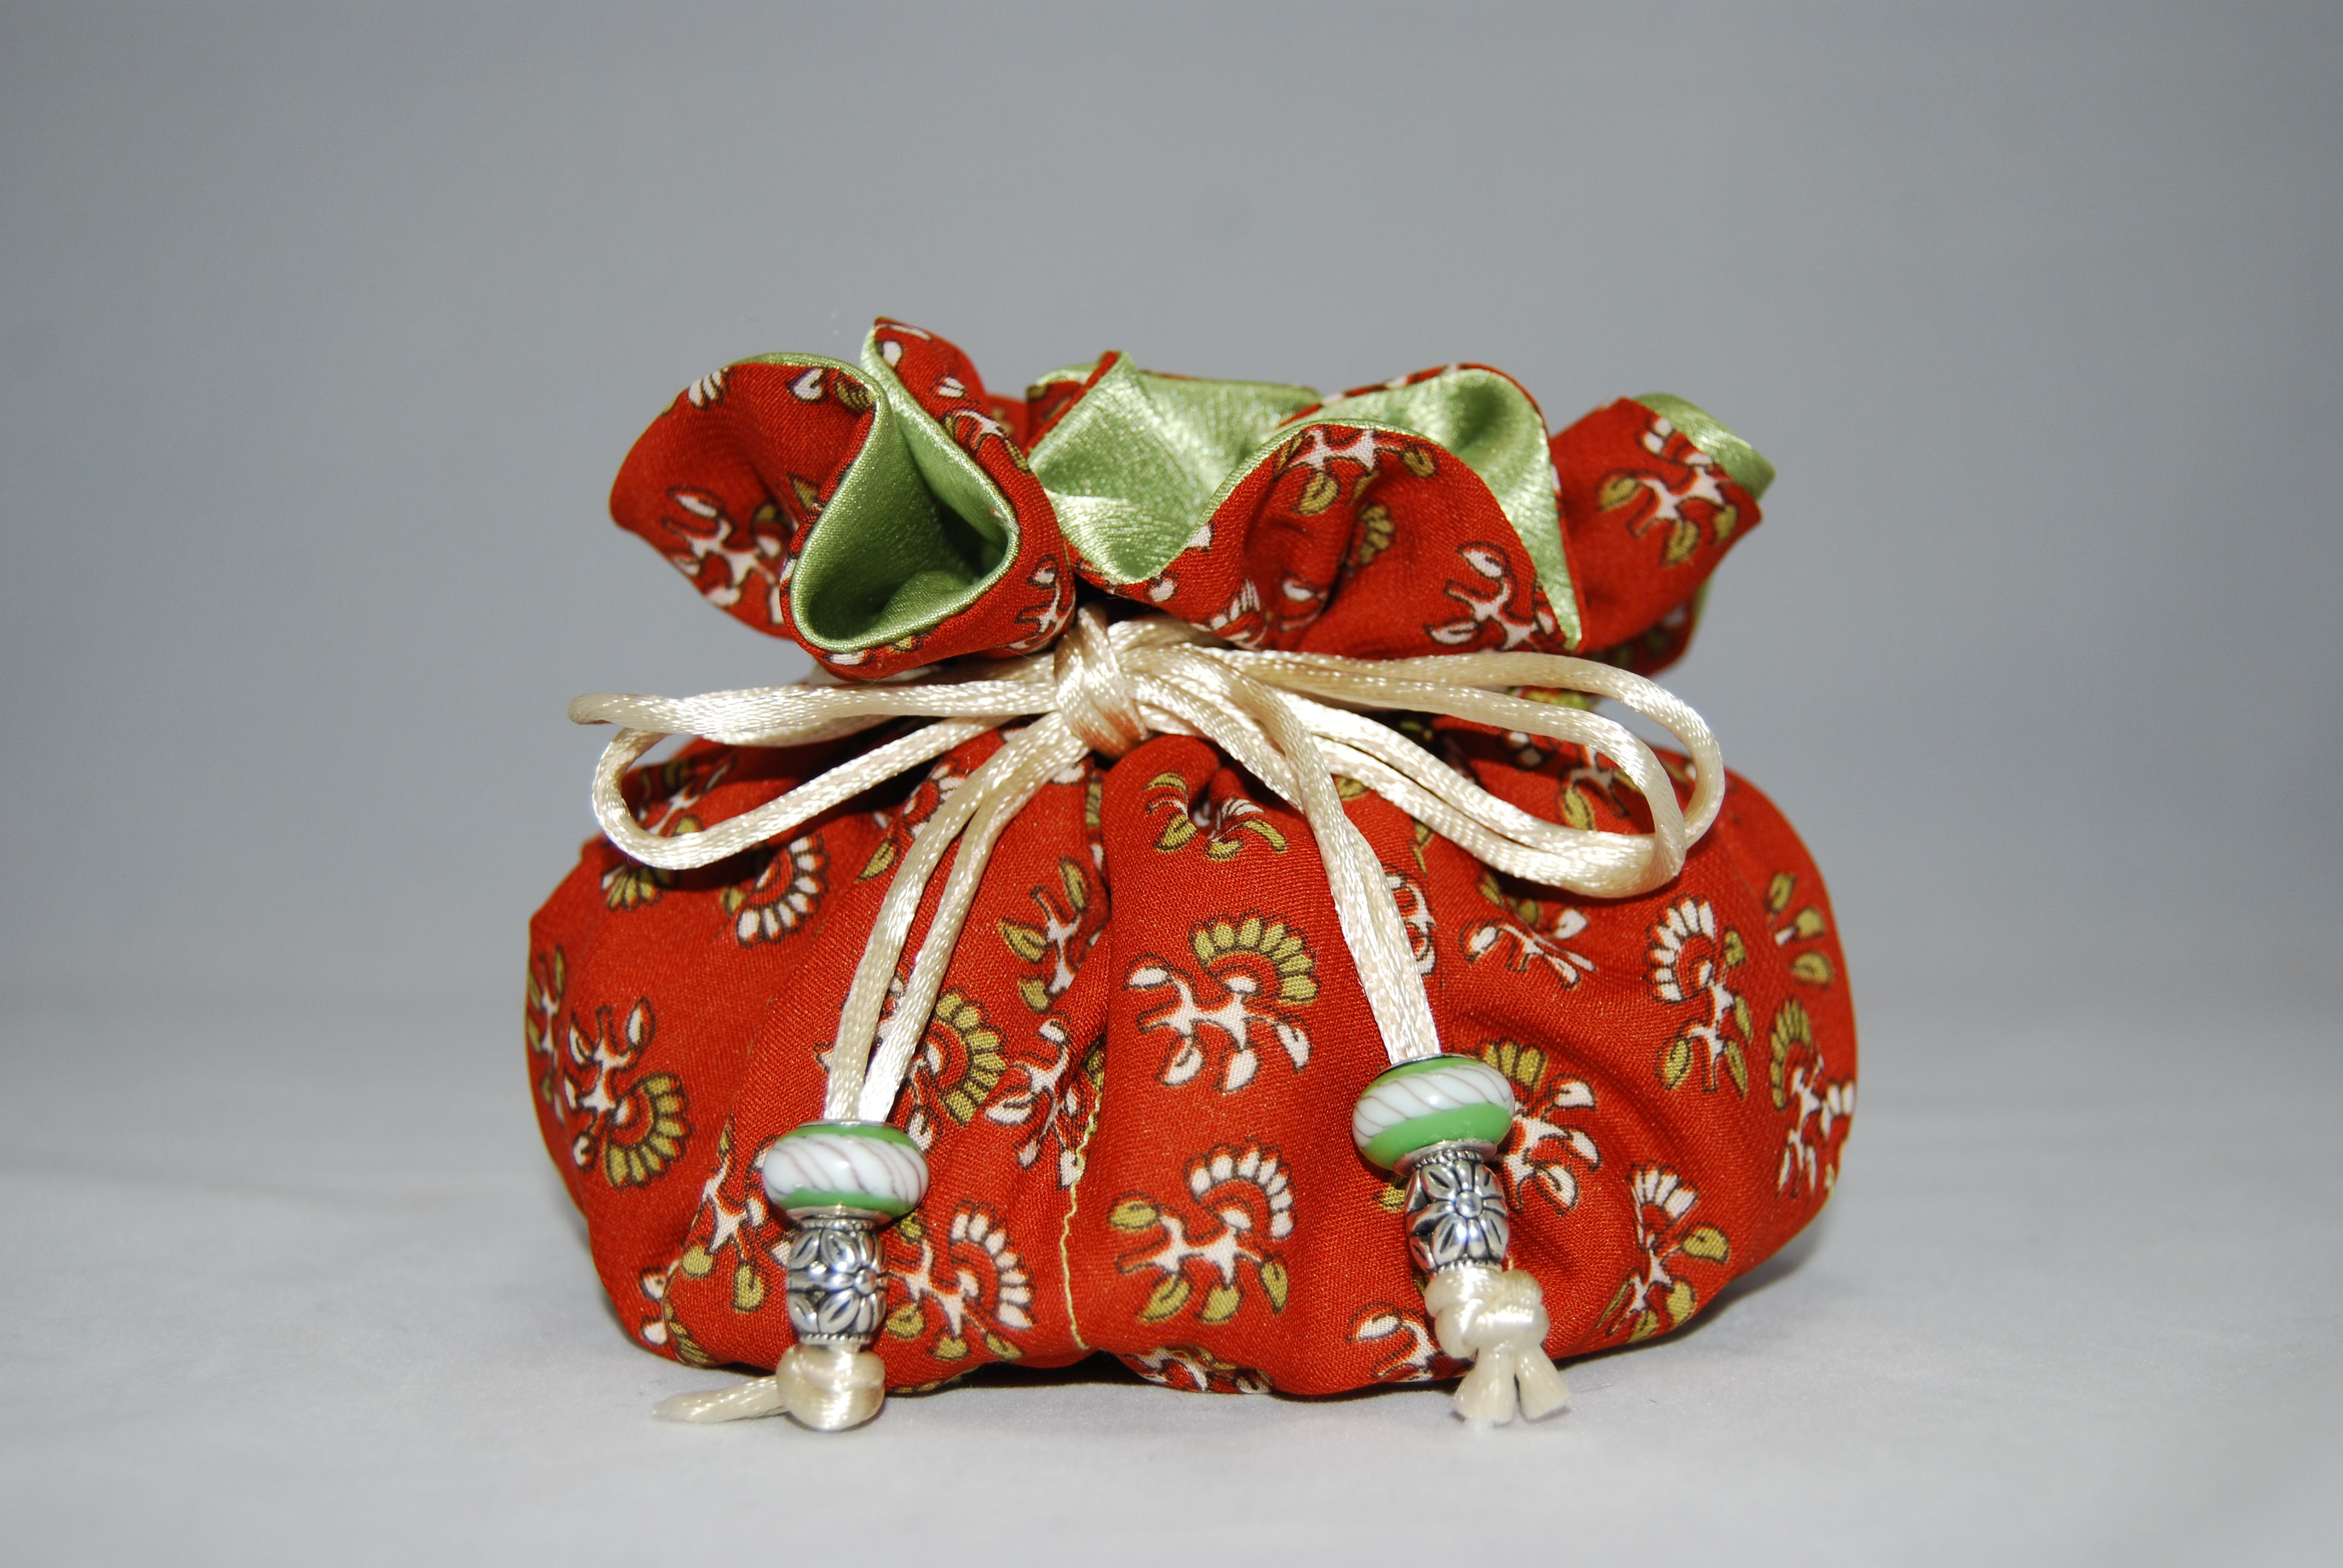 Very Pondicherry.  Jewelry Travel/Storage bag made of fine Indian Silk.  Reminiscent of the beautiful Pondicherry area on the Bay of Bengal, eastern cost of India.   www.Bangarubags.com